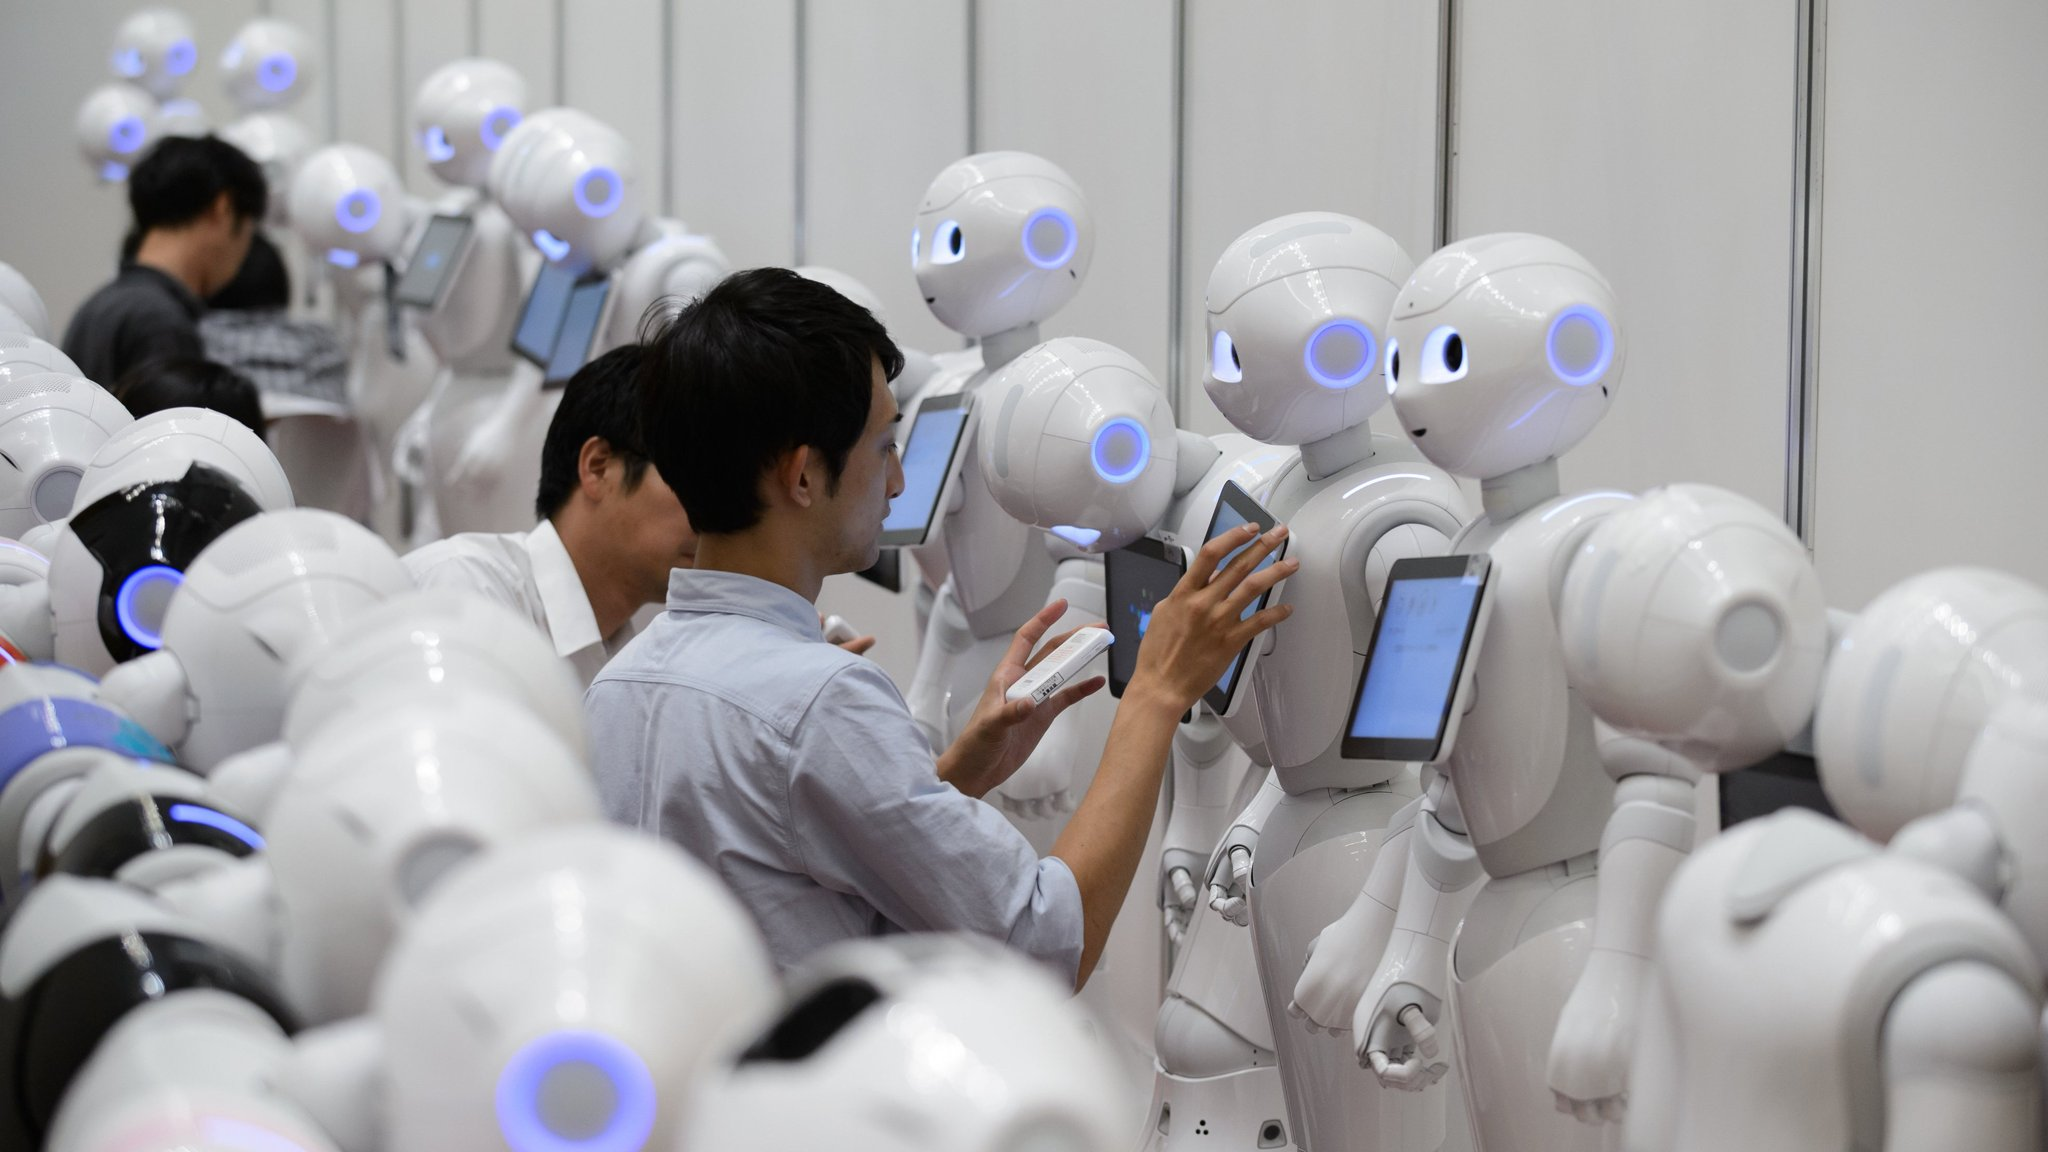 Hackers expose frailty of robots | Financial Times